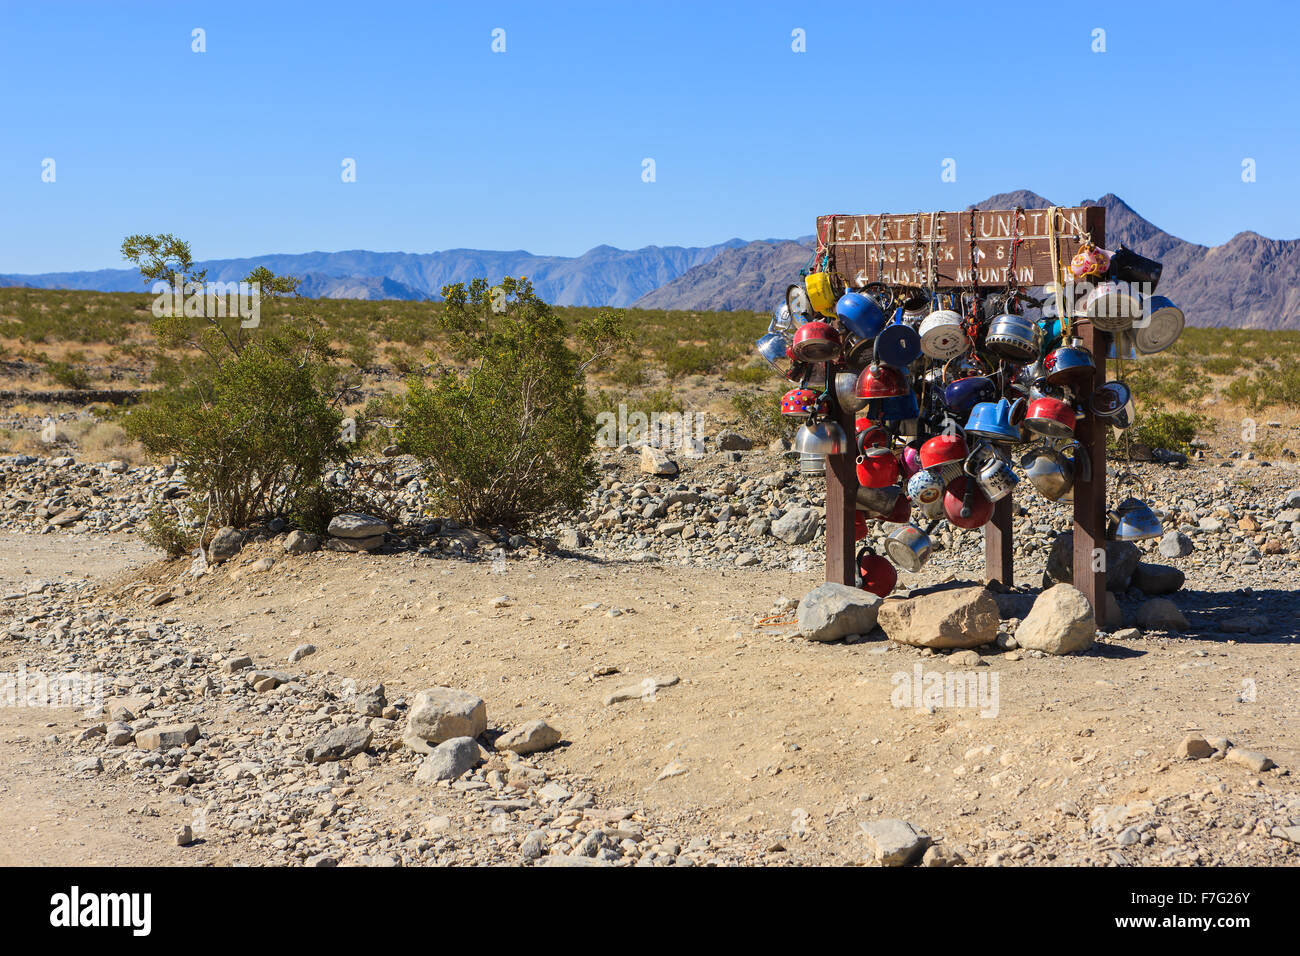 Plateau électrique junction road sign in Death Valley N.P, California, USA Photo Stock